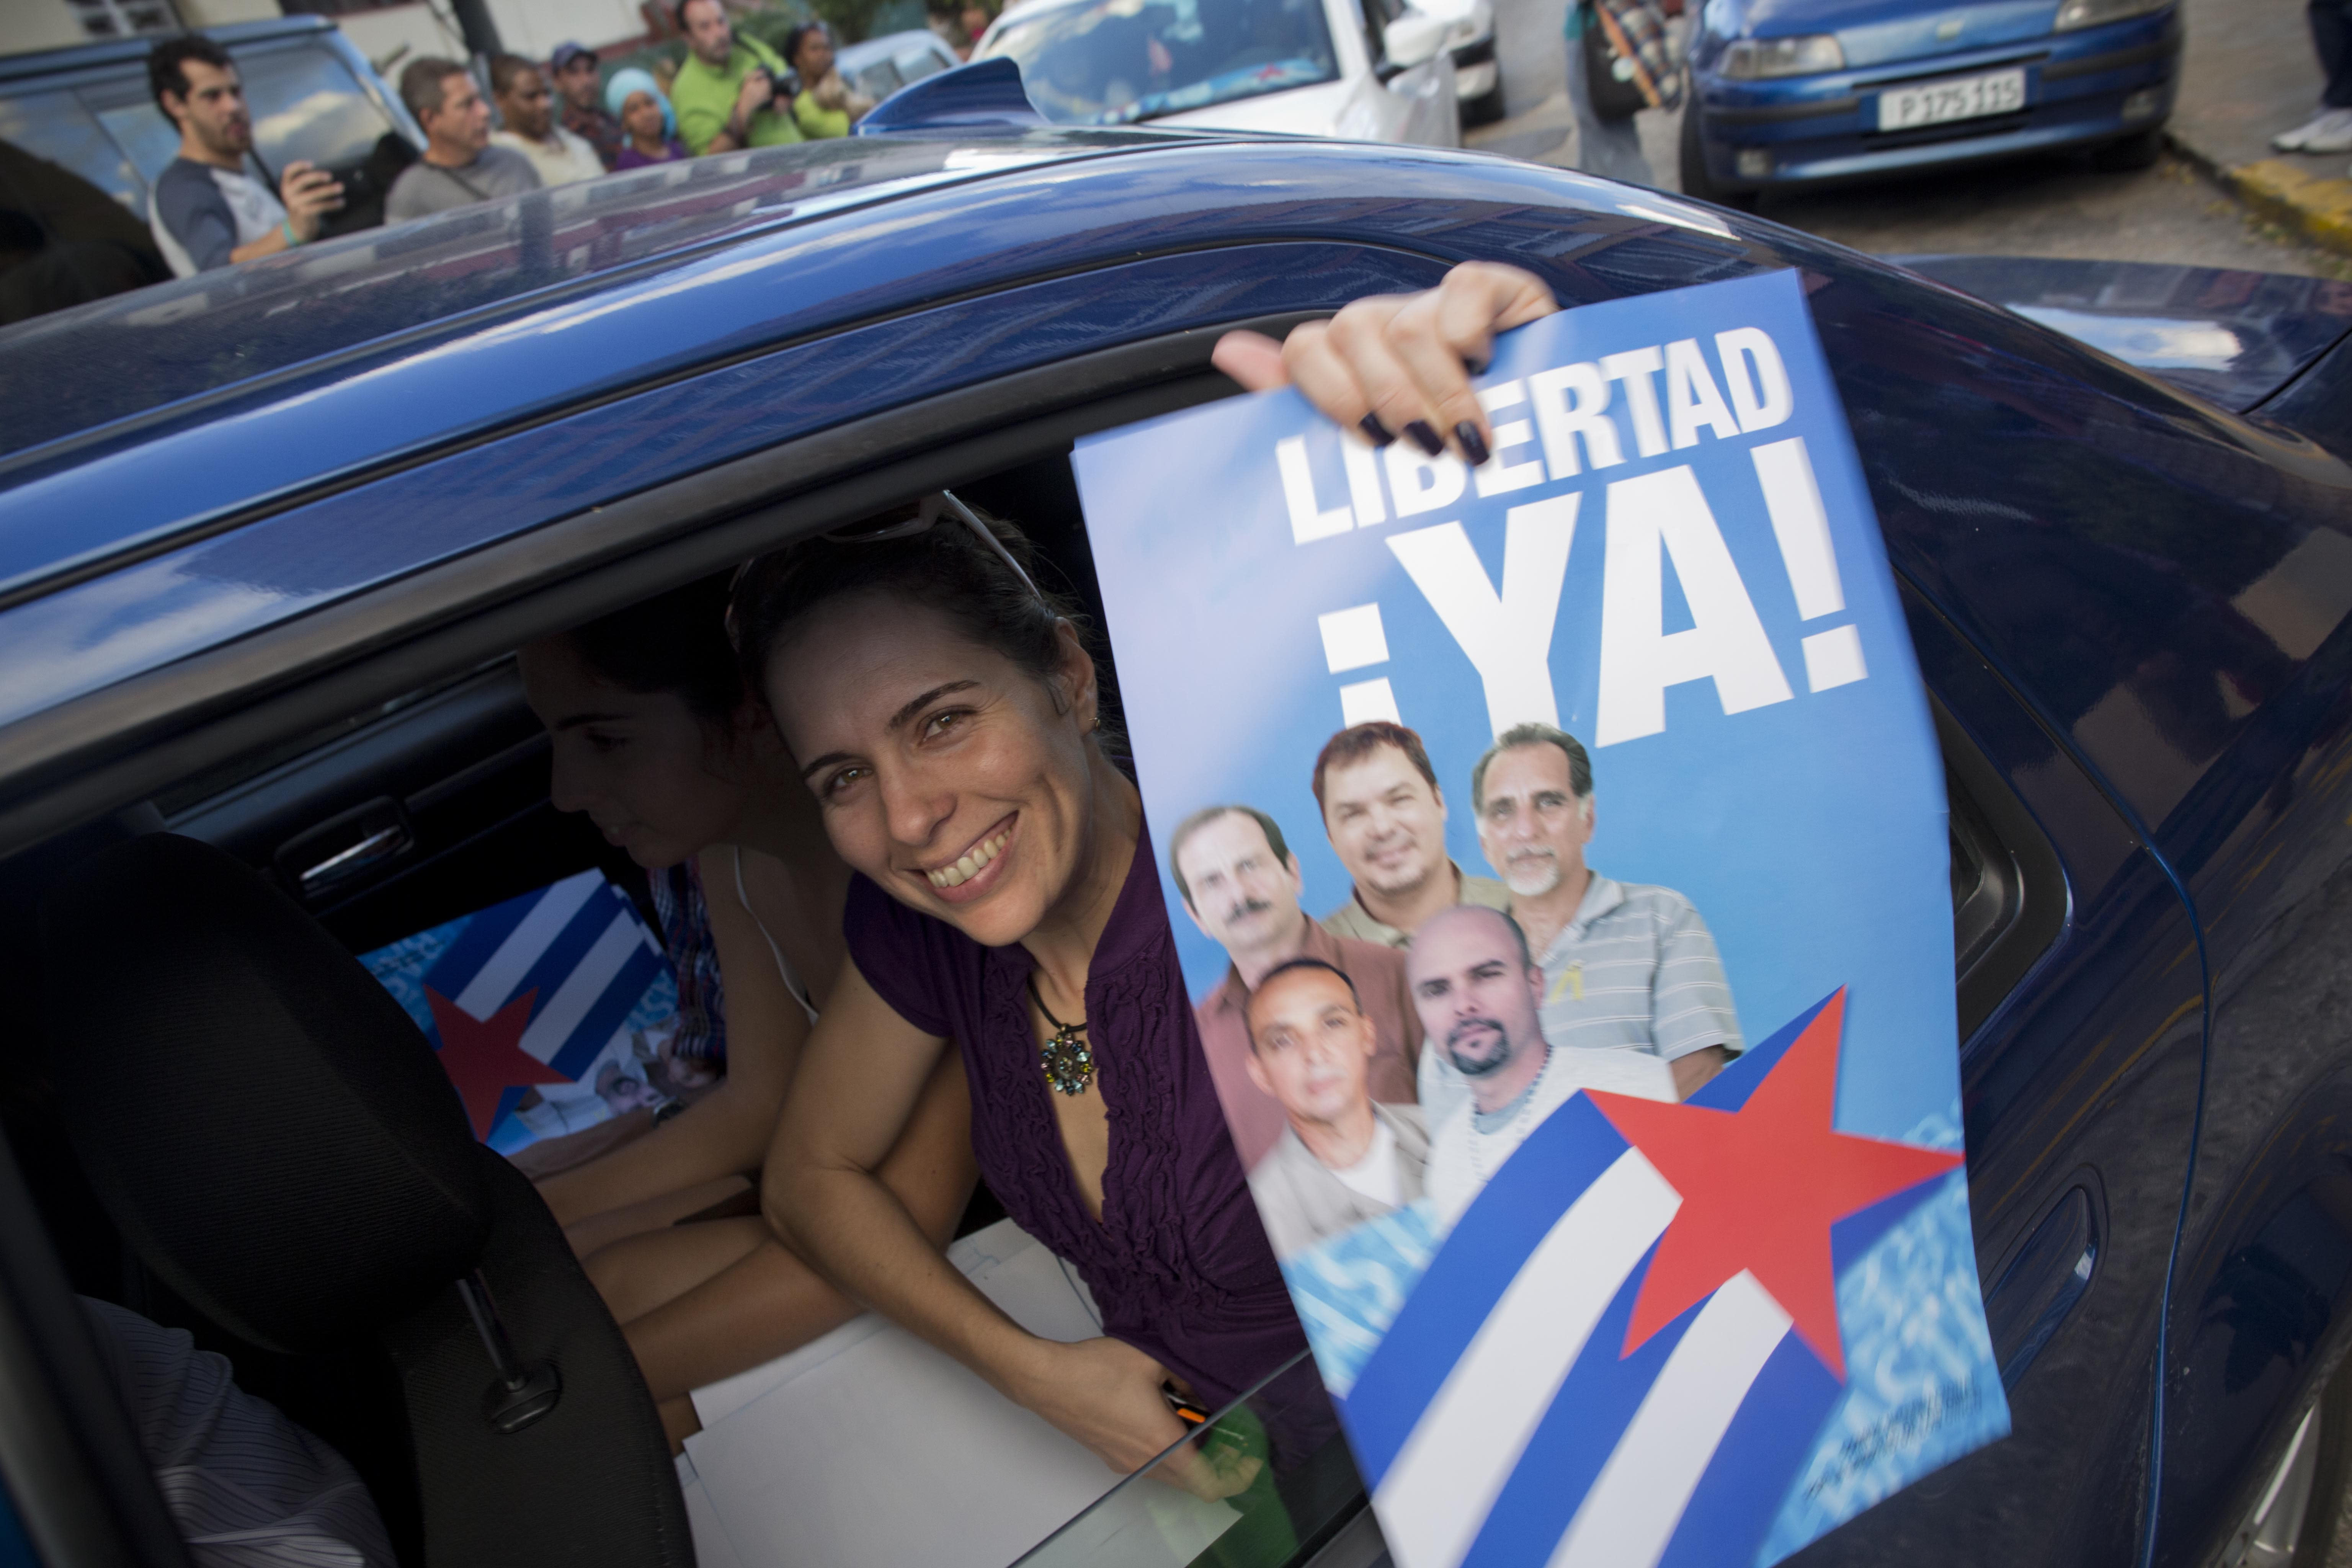 Not much chance of Congress stopping Cuba policy